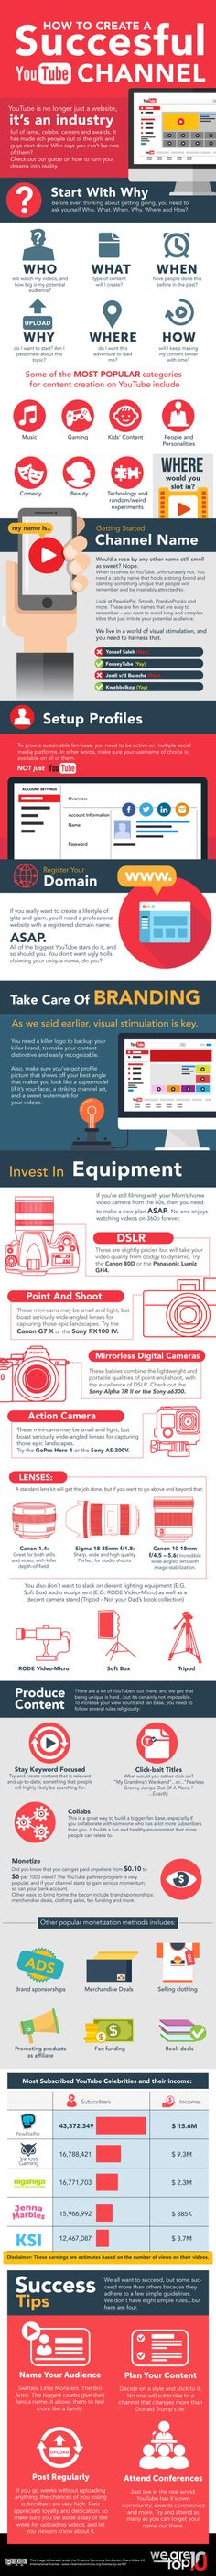 How to Start a Successful Youtube Channel Infographic